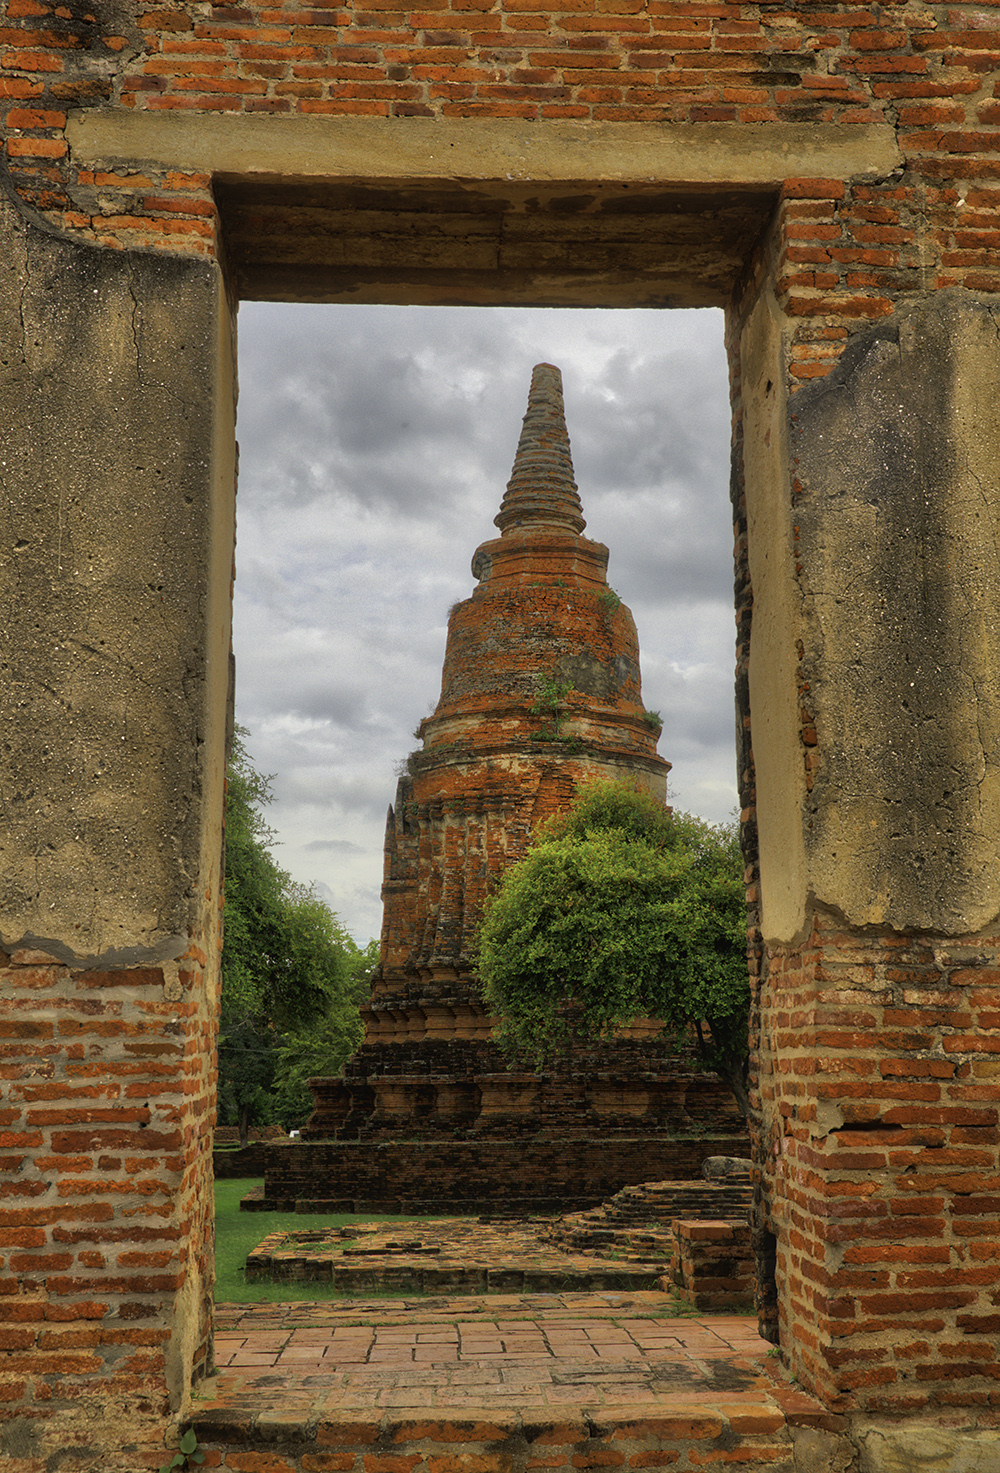 Location and Date: Ayutthaya, Thailand; 25 August 2017  Tech Specs: 44 mm @ f/8.0.  ISO 400.  3 Bracket HDR  Camera & Lens: Canon 5D Mark III; Canon EF 24-70 f/2.8L II USM